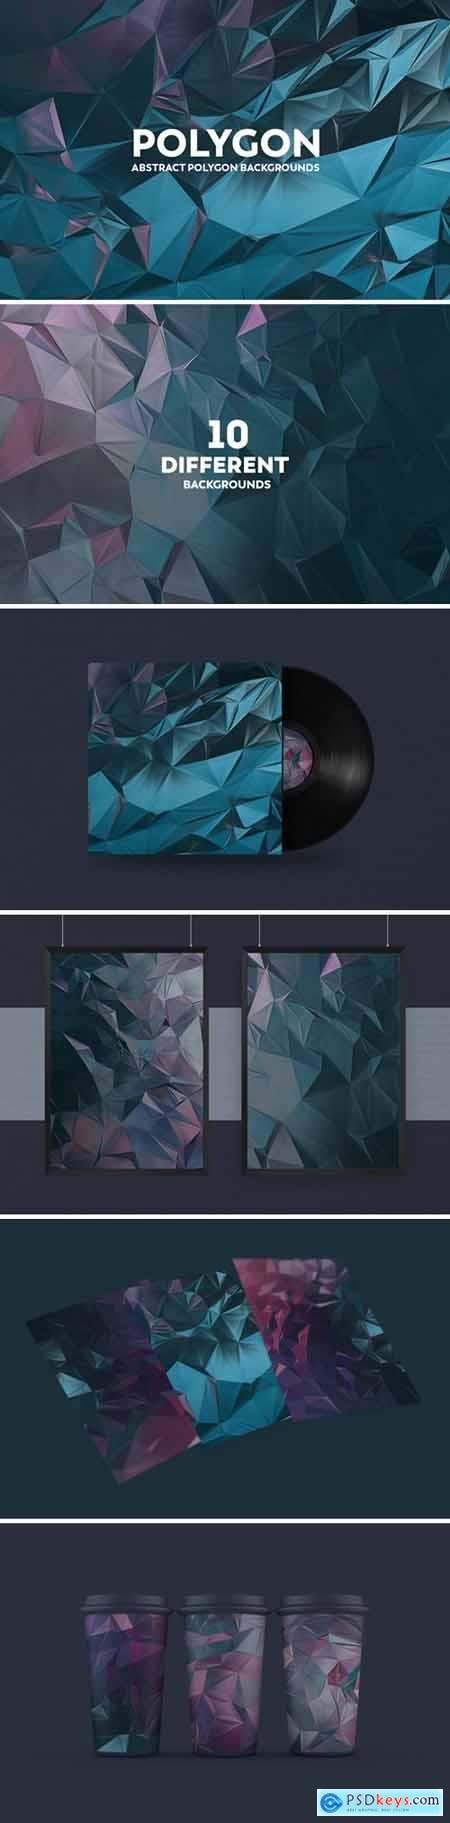 Abstract Polygon Backgrounds B7V2BB3